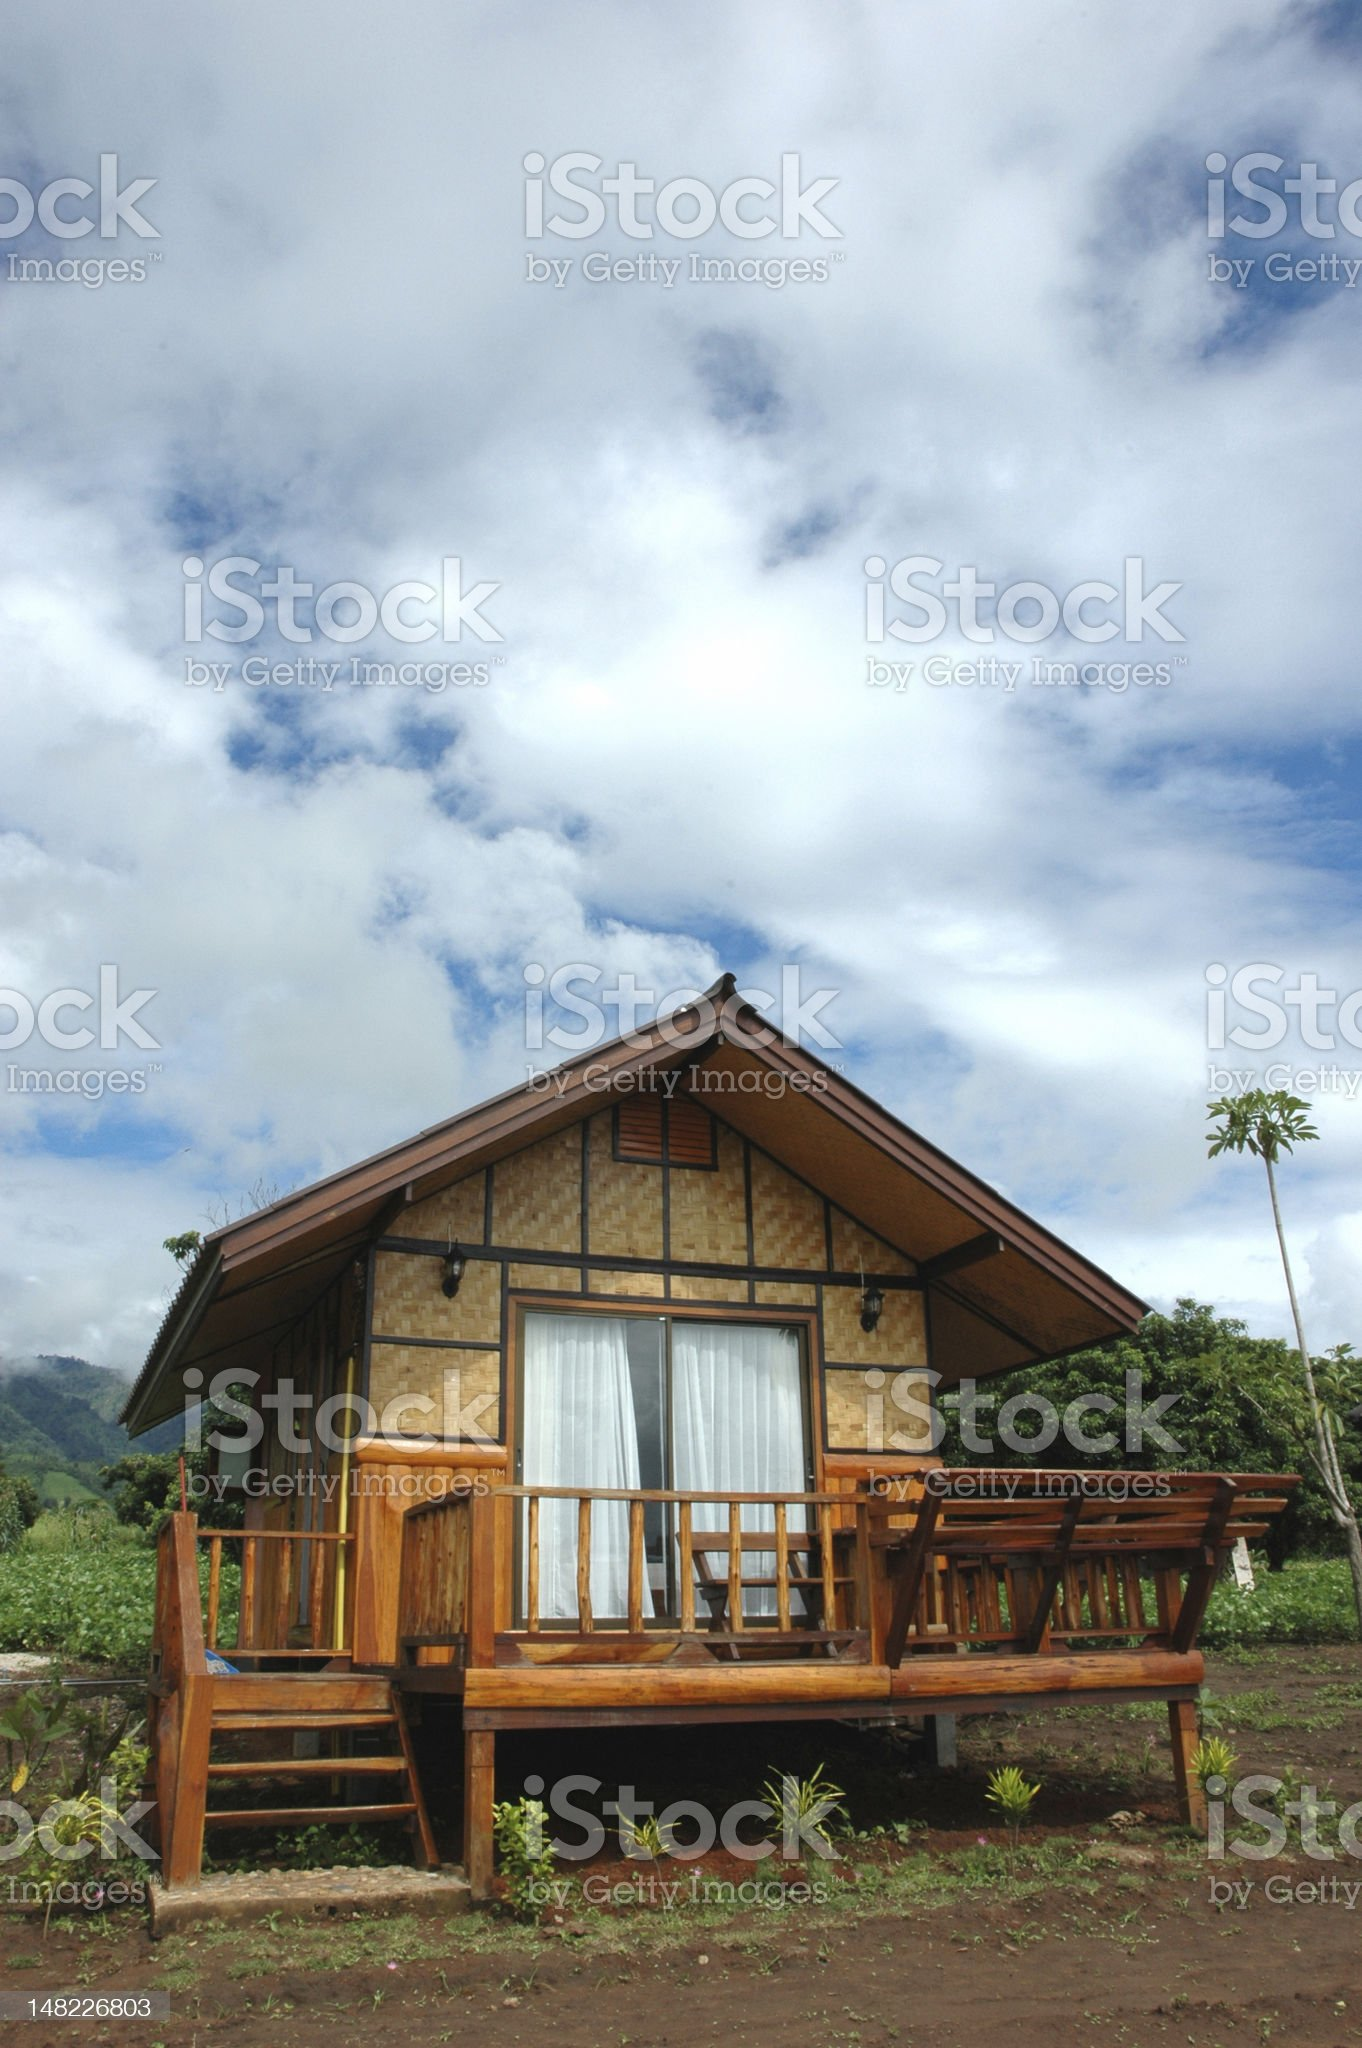 Country Home Single royalty-free stock photo